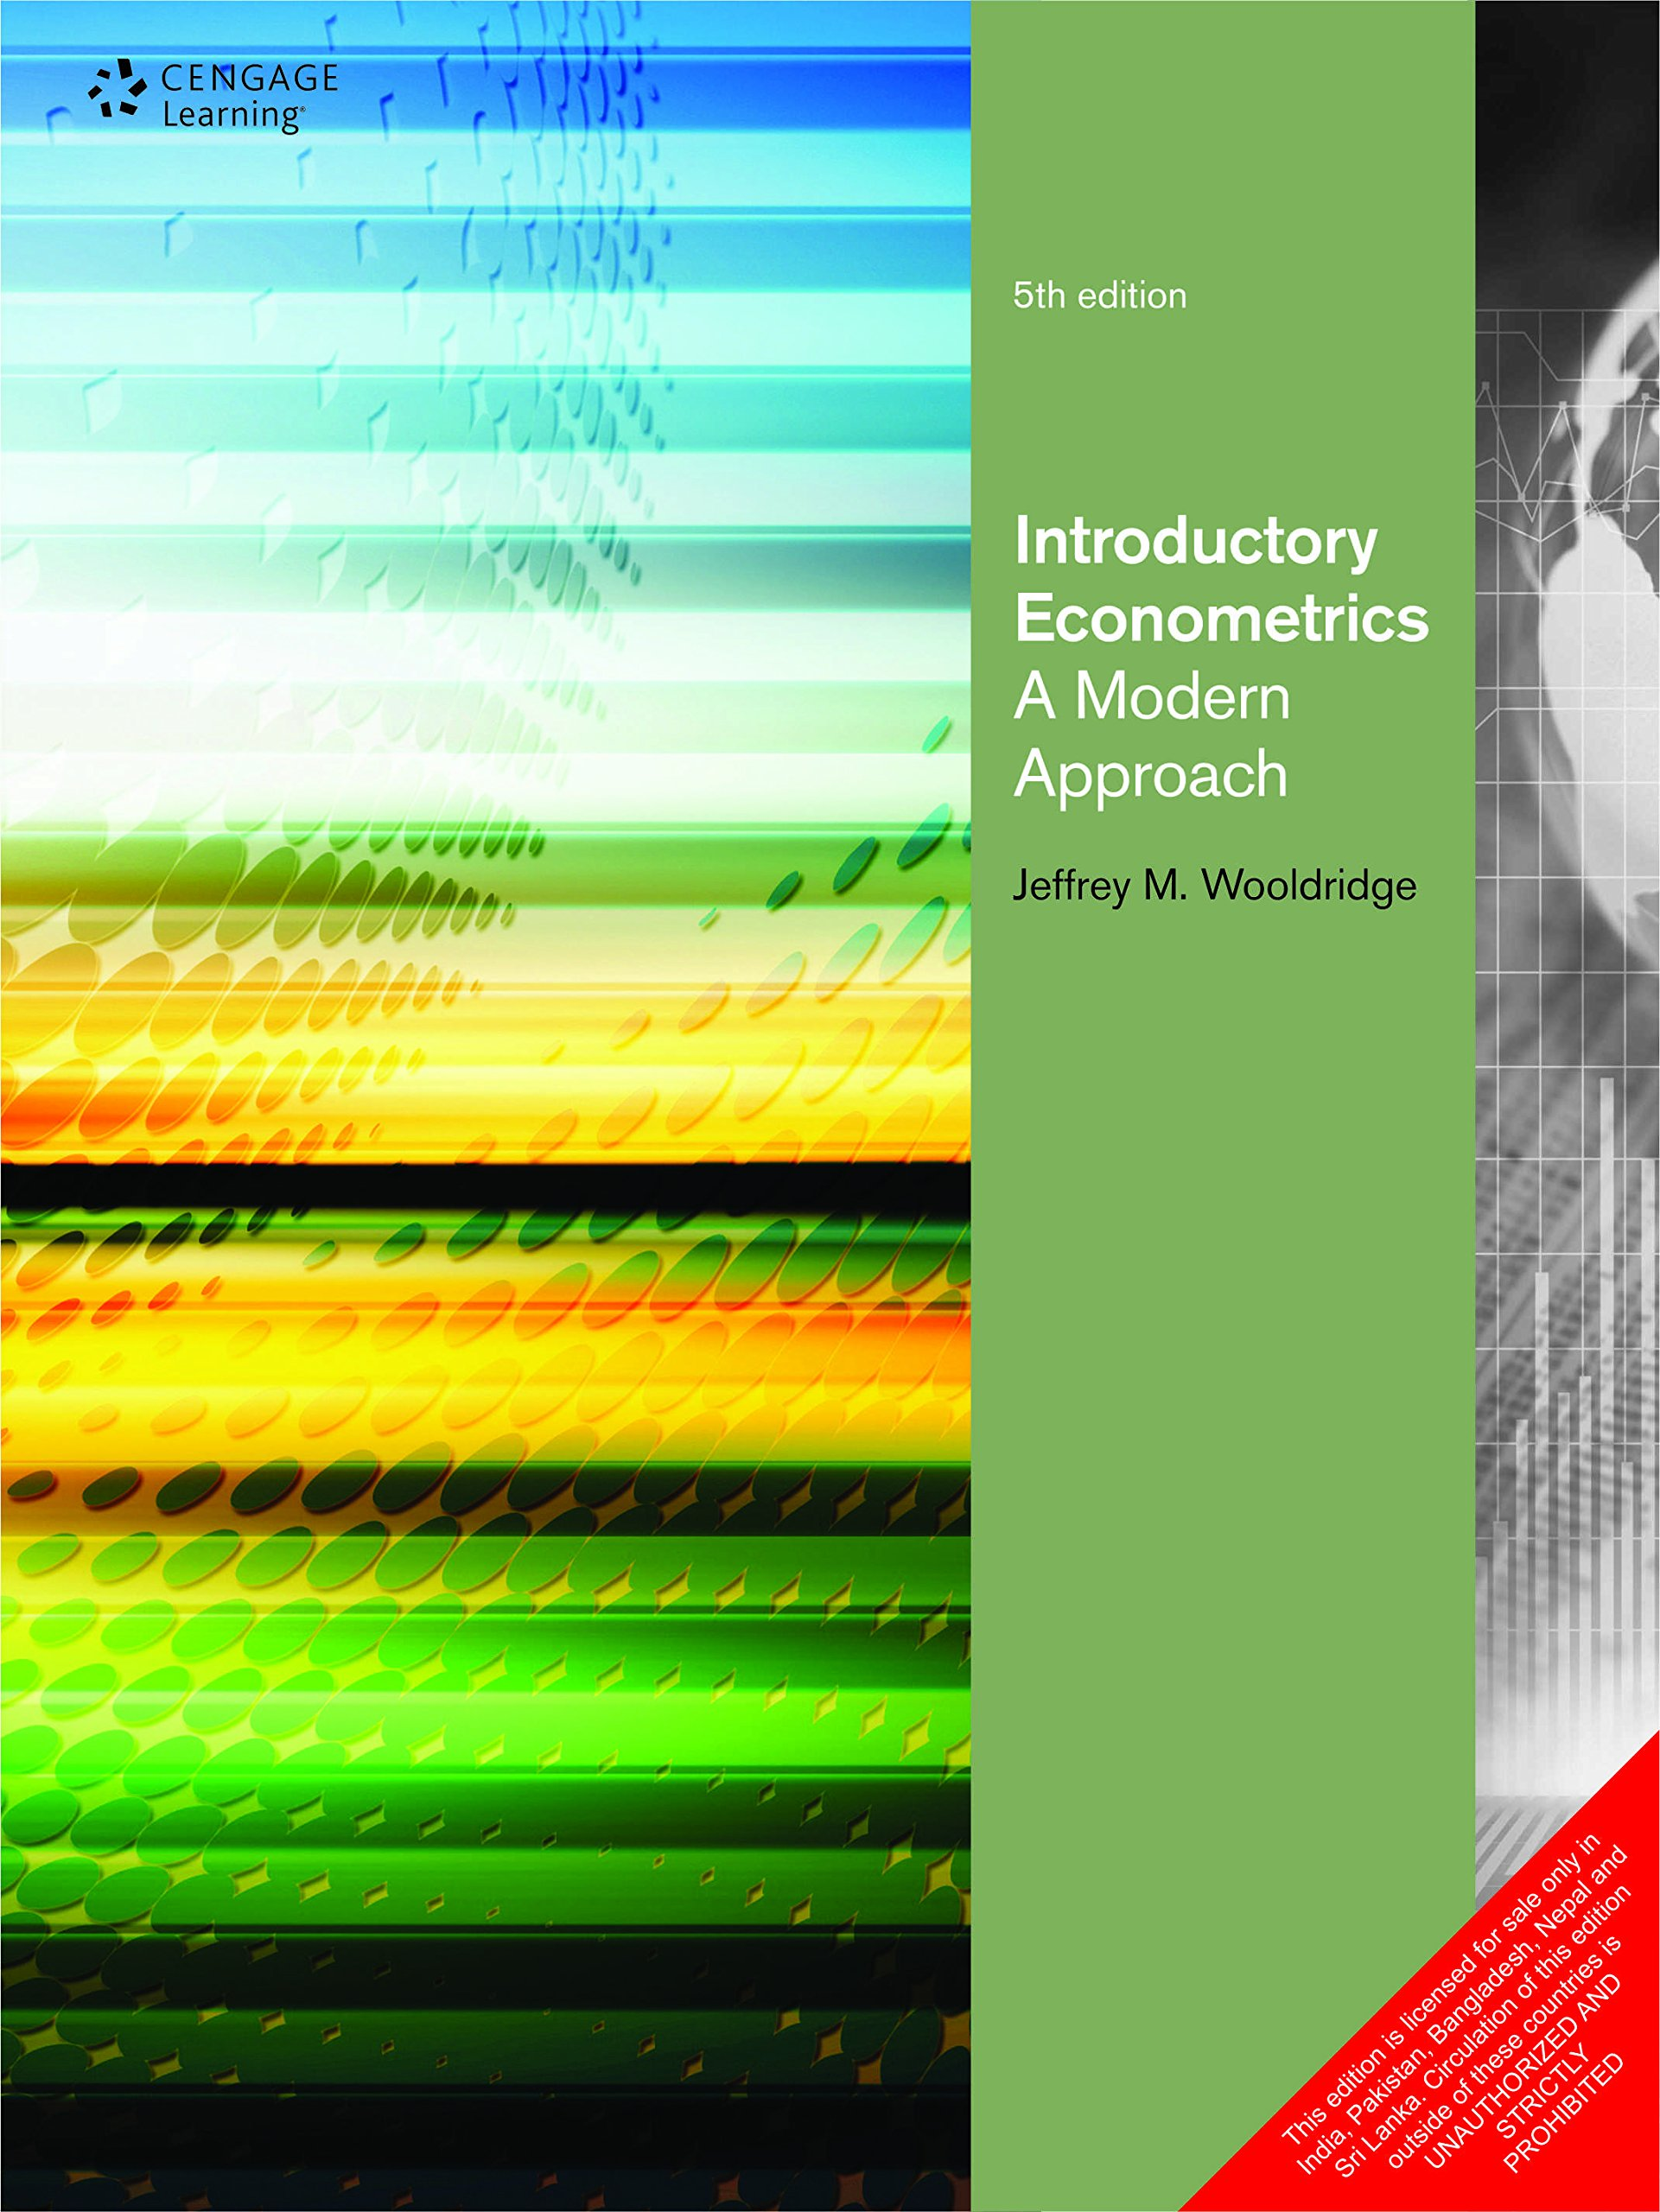 Buy introductory econometrics a modern approach book online at low buy introductory econometrics a modern approach book online at low prices in india introductory econometrics a modern approach reviews ratings fandeluxe Gallery